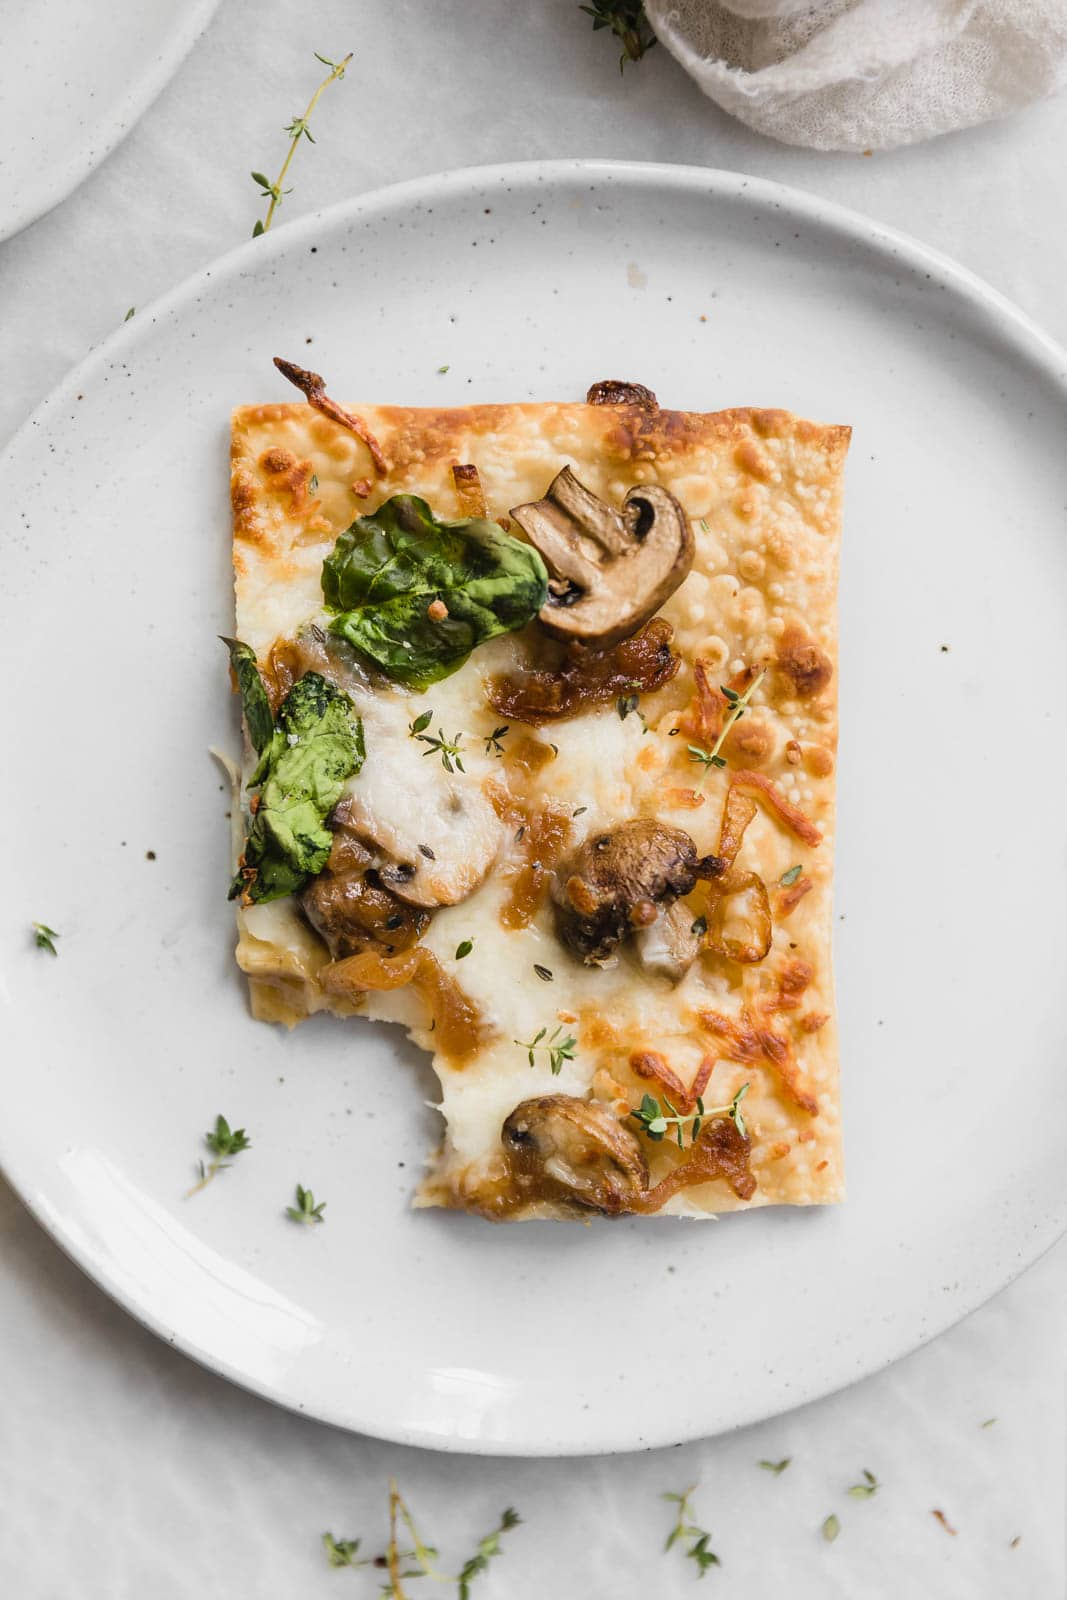 A thin crust Caramelized Onion Mushroom and Spinach Pizza perfect for those weeknights when you want a quick fix dinner!